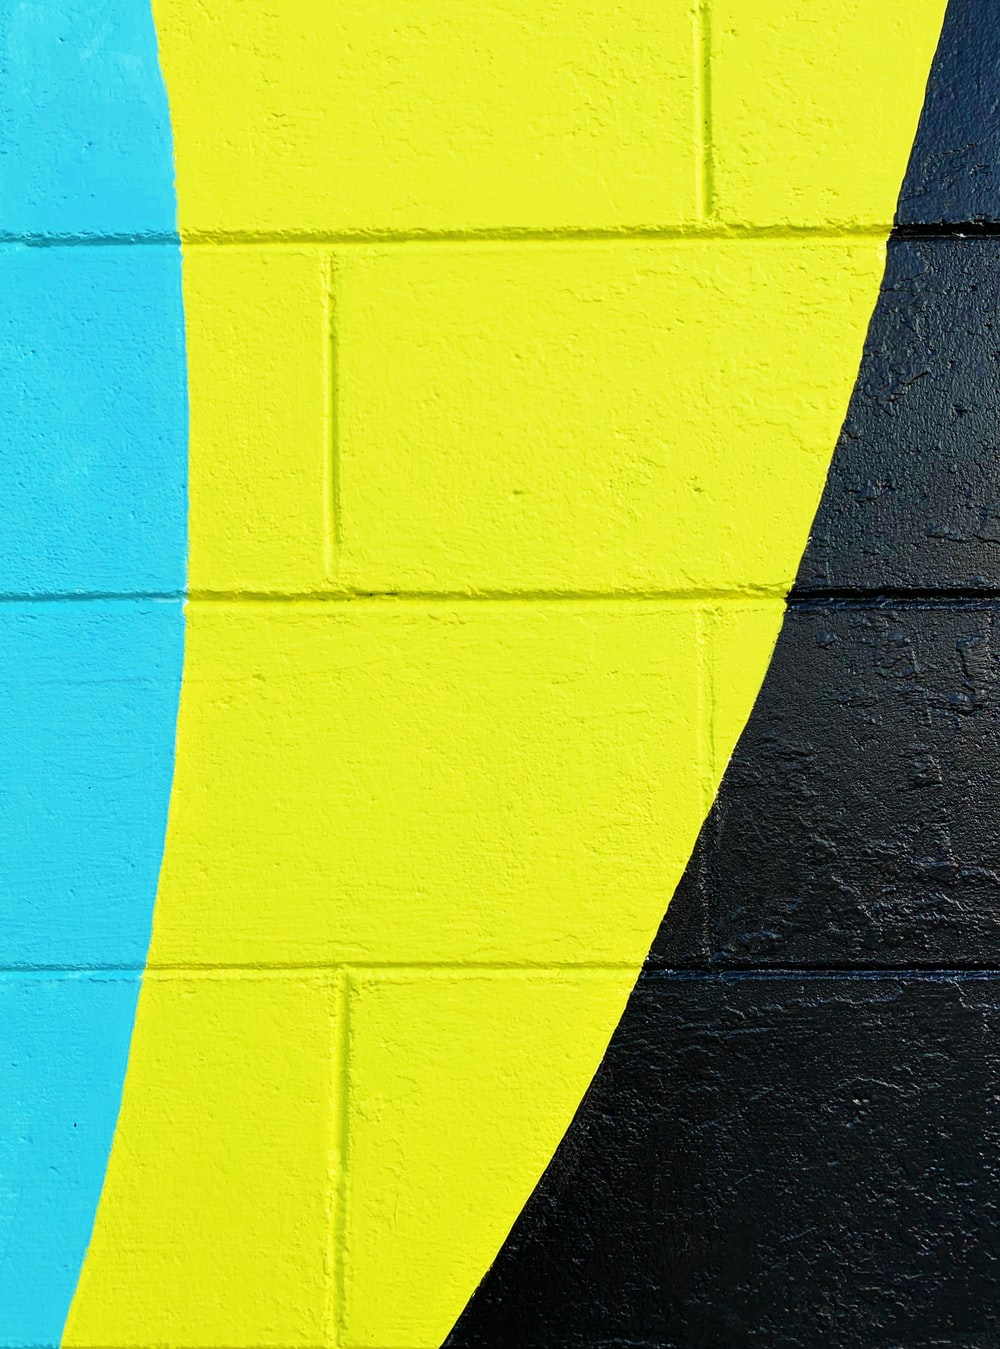 teal, yellow, and black painted wall